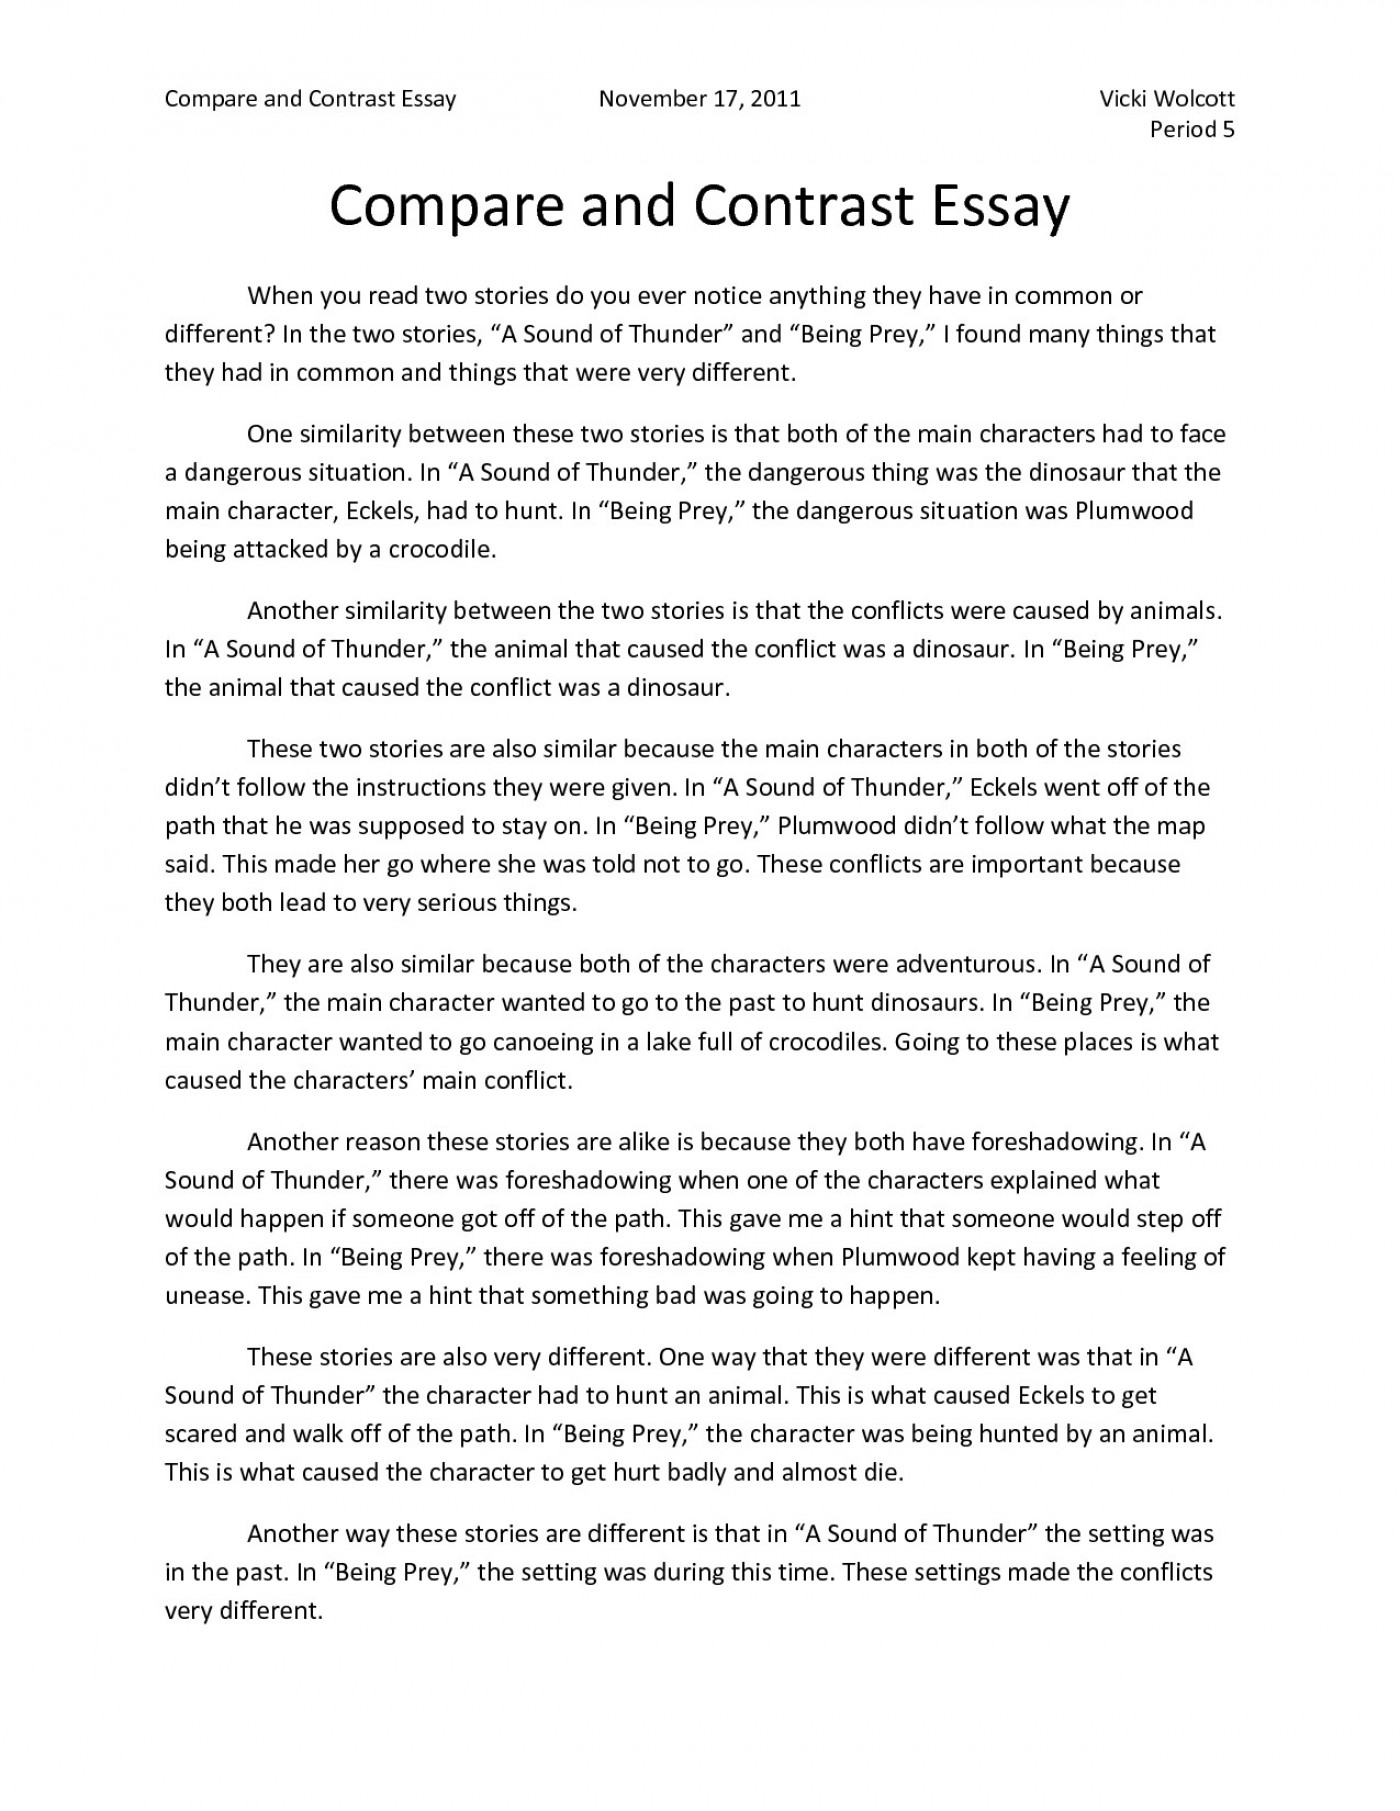 014 Comparingnd Contrasting Essay Example Satire Examples Of Comparison Contrast Essays Com How To Write Fascinating A An Introduction For Essay-example On Obesity 1400